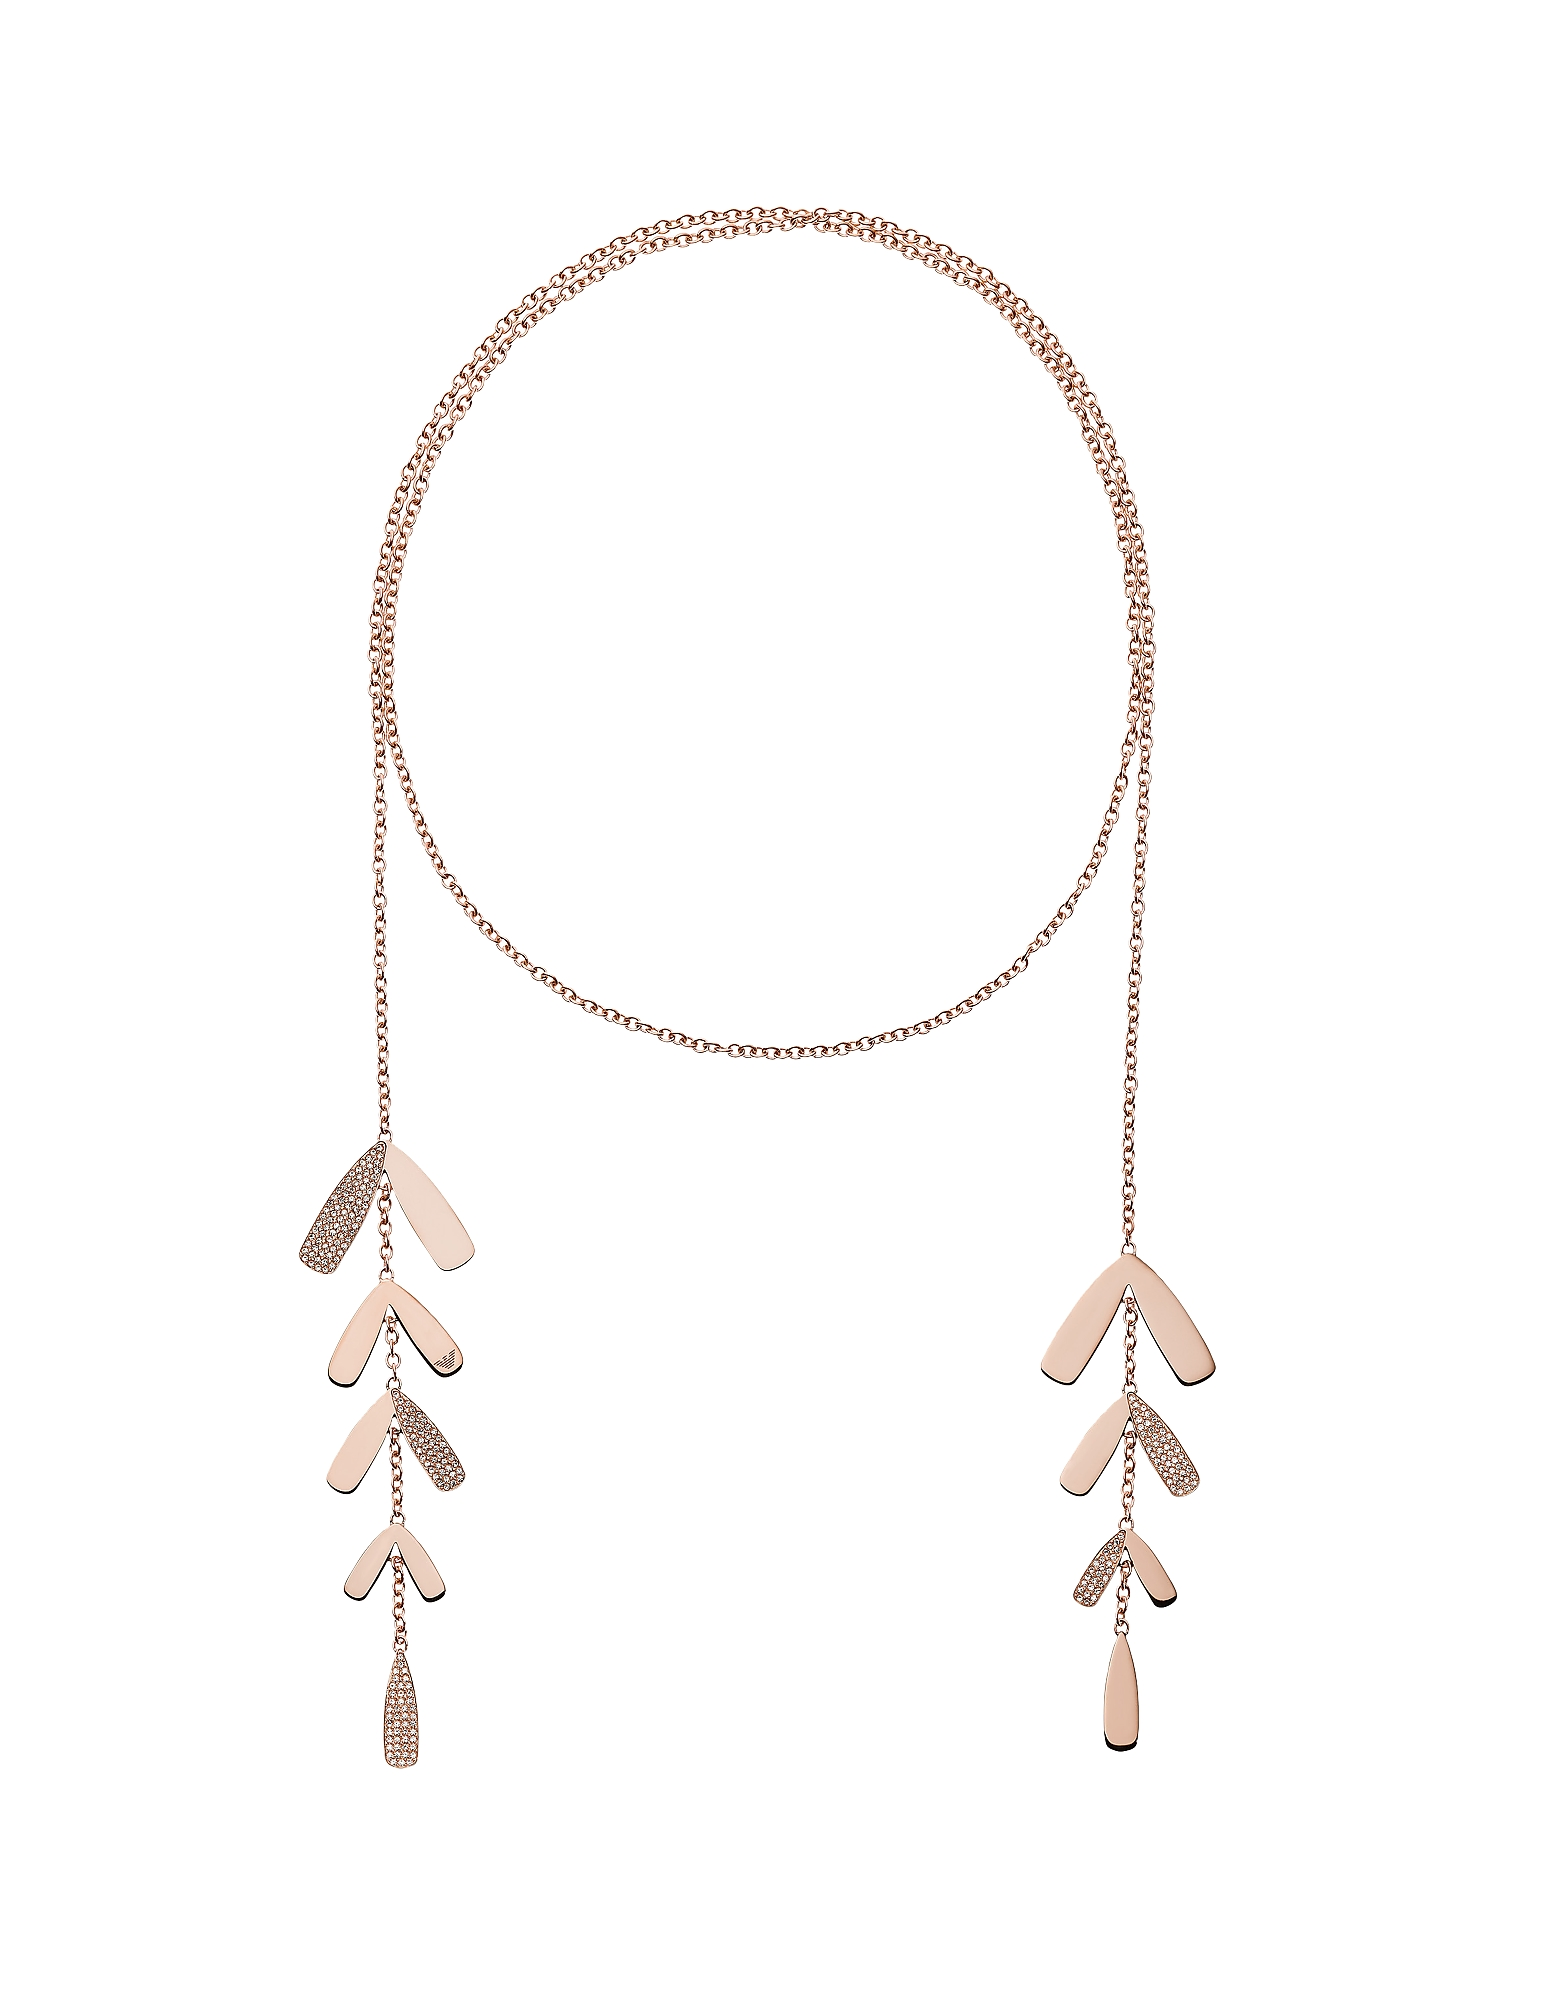 Abstract Leaves and Crystals Women's Necklace